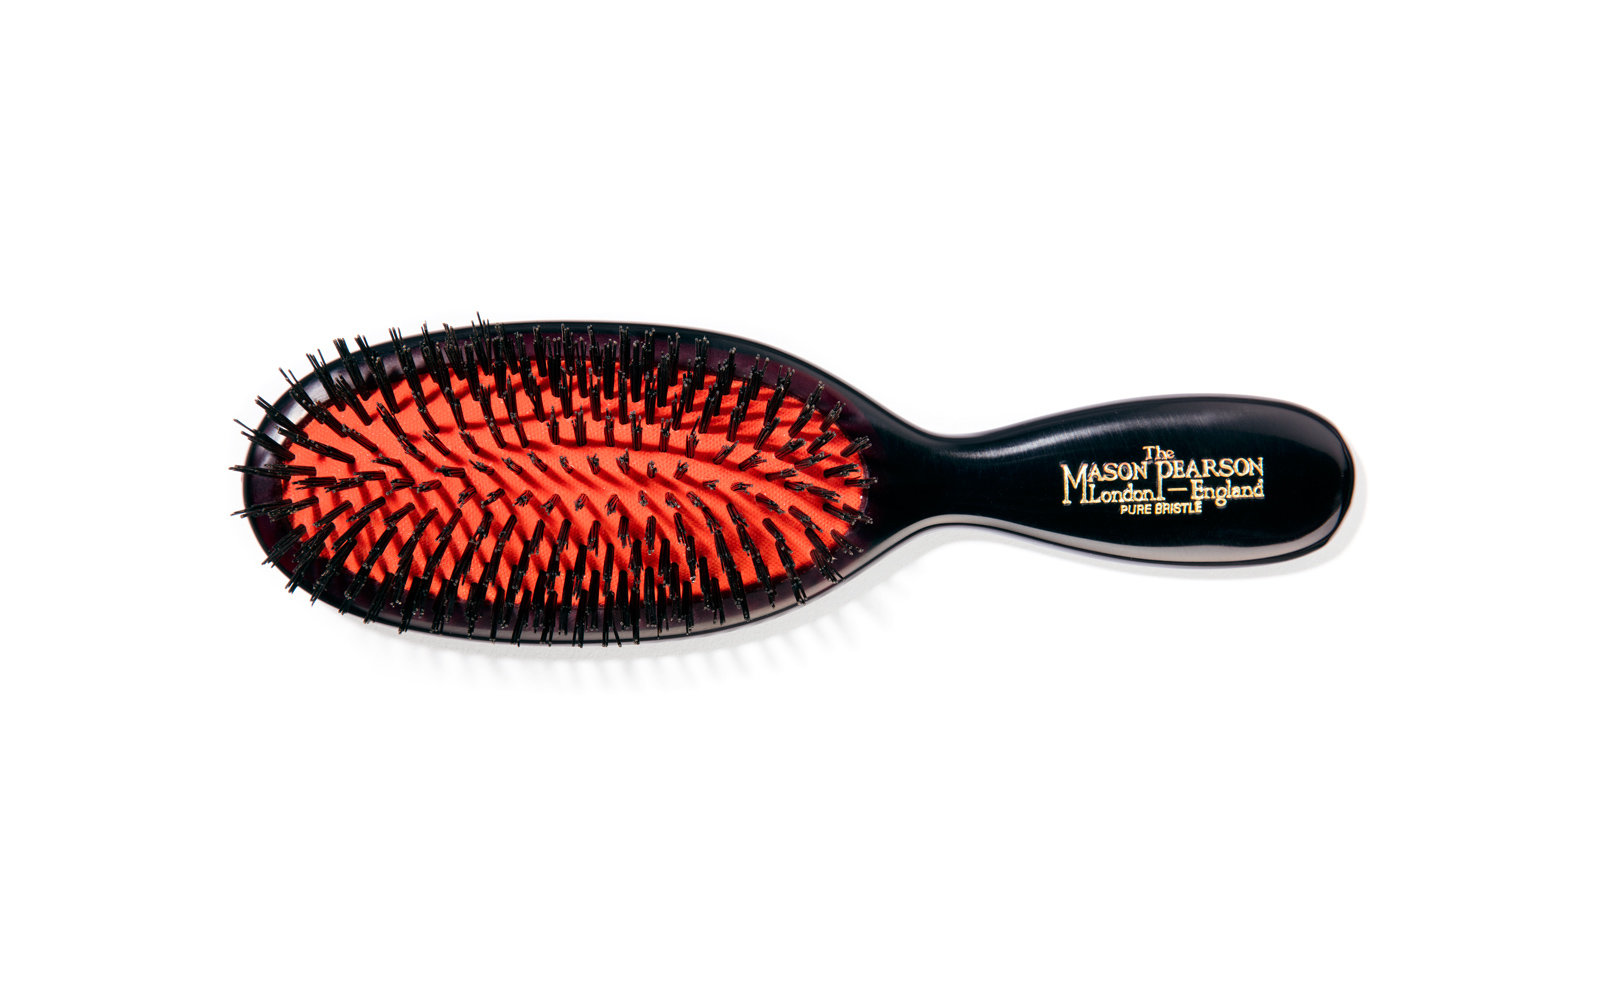 Mason Pearson Pocket Bristle Brush